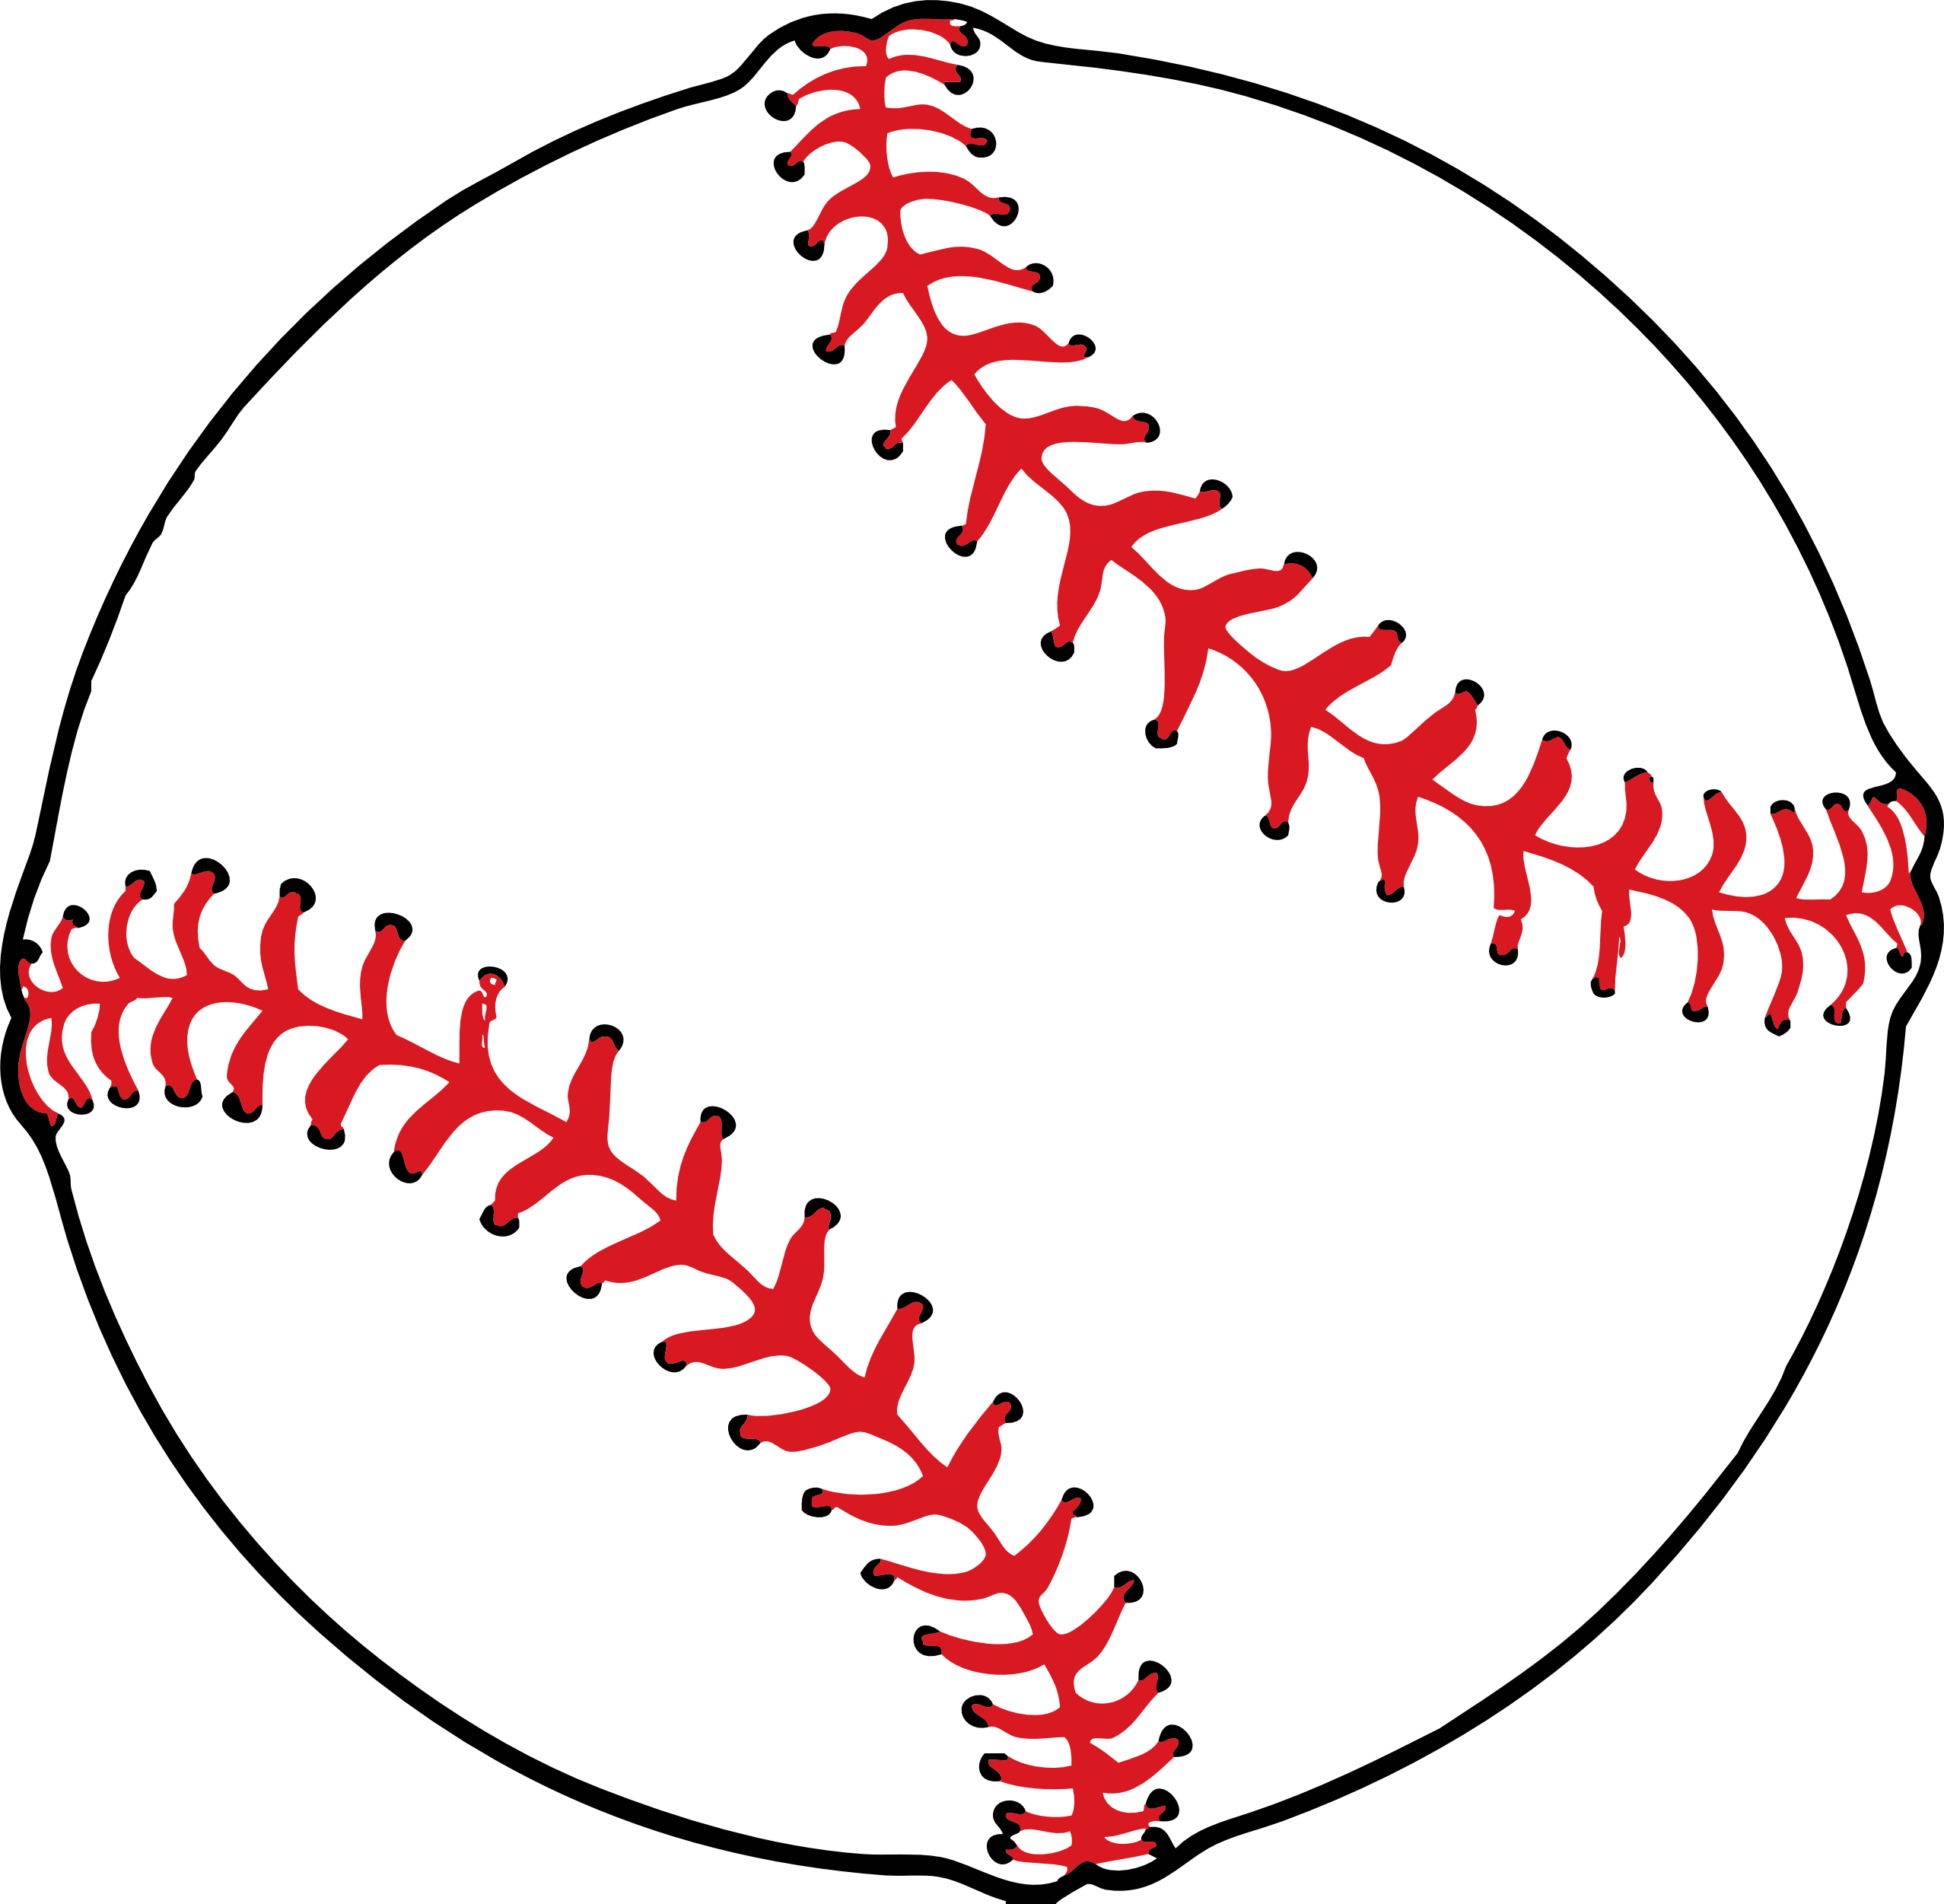 Download this high resolution Baseball Transparent PNG Image